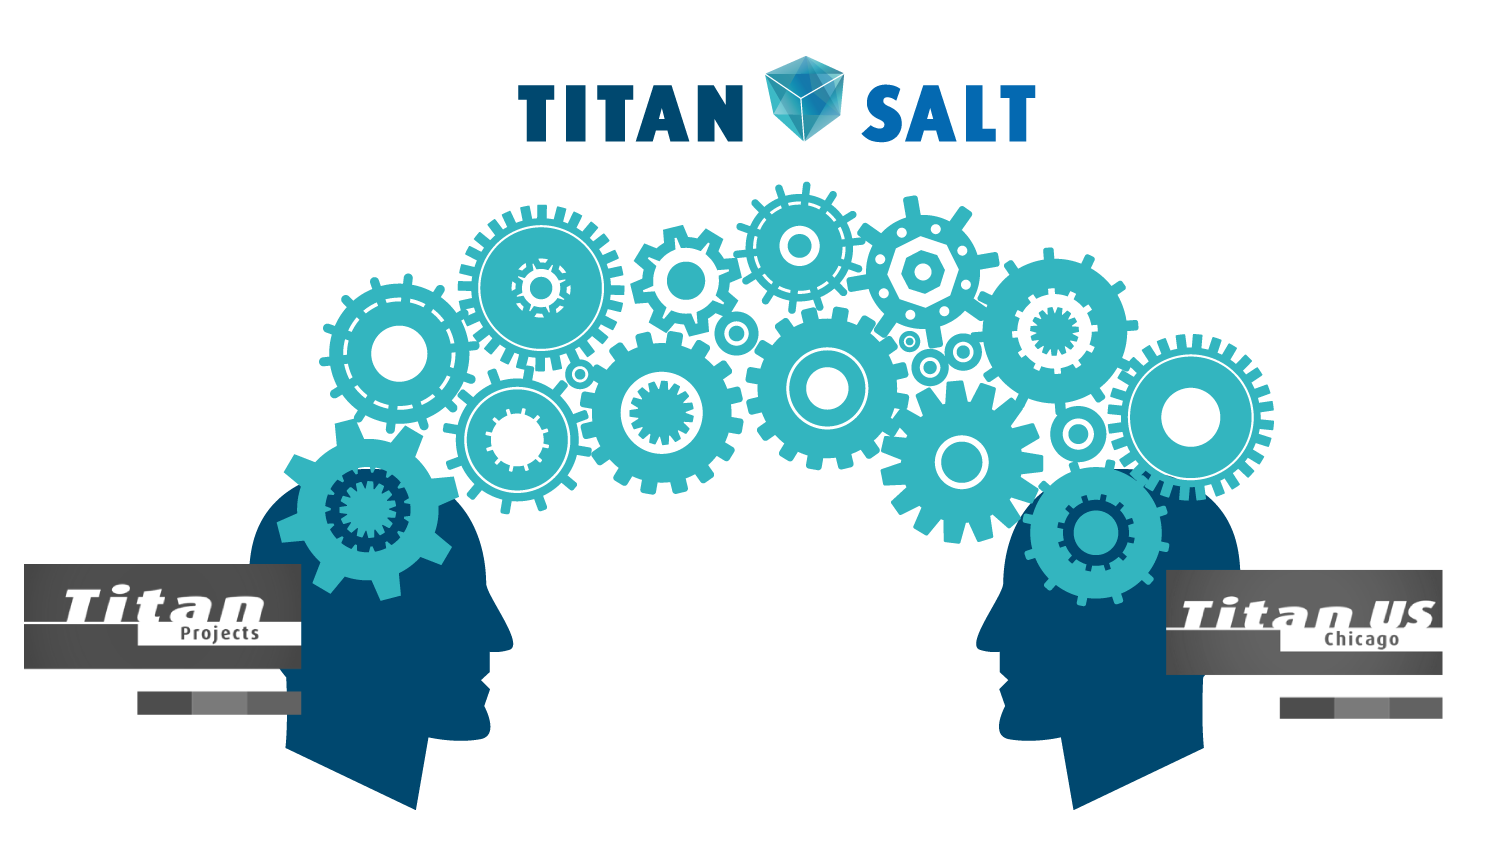 about titan salt